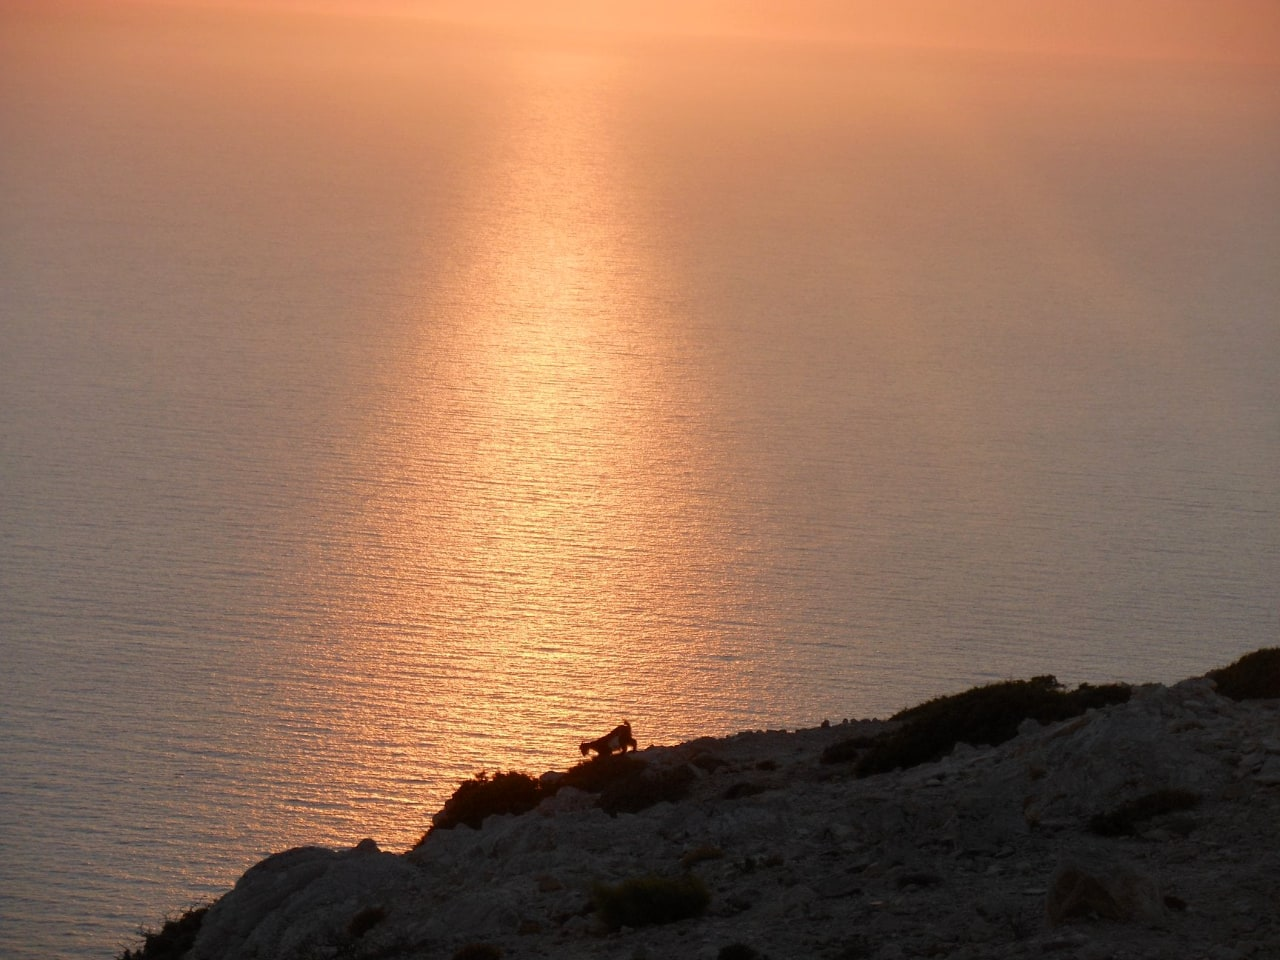 Gavdos Island Boat Round Trip, best boat trip to gavdos island, best boat trips sfakia crete, south chania activities, south chania, things to do sfakia chania, explore the island of gavdos, daily cruise gavdos island